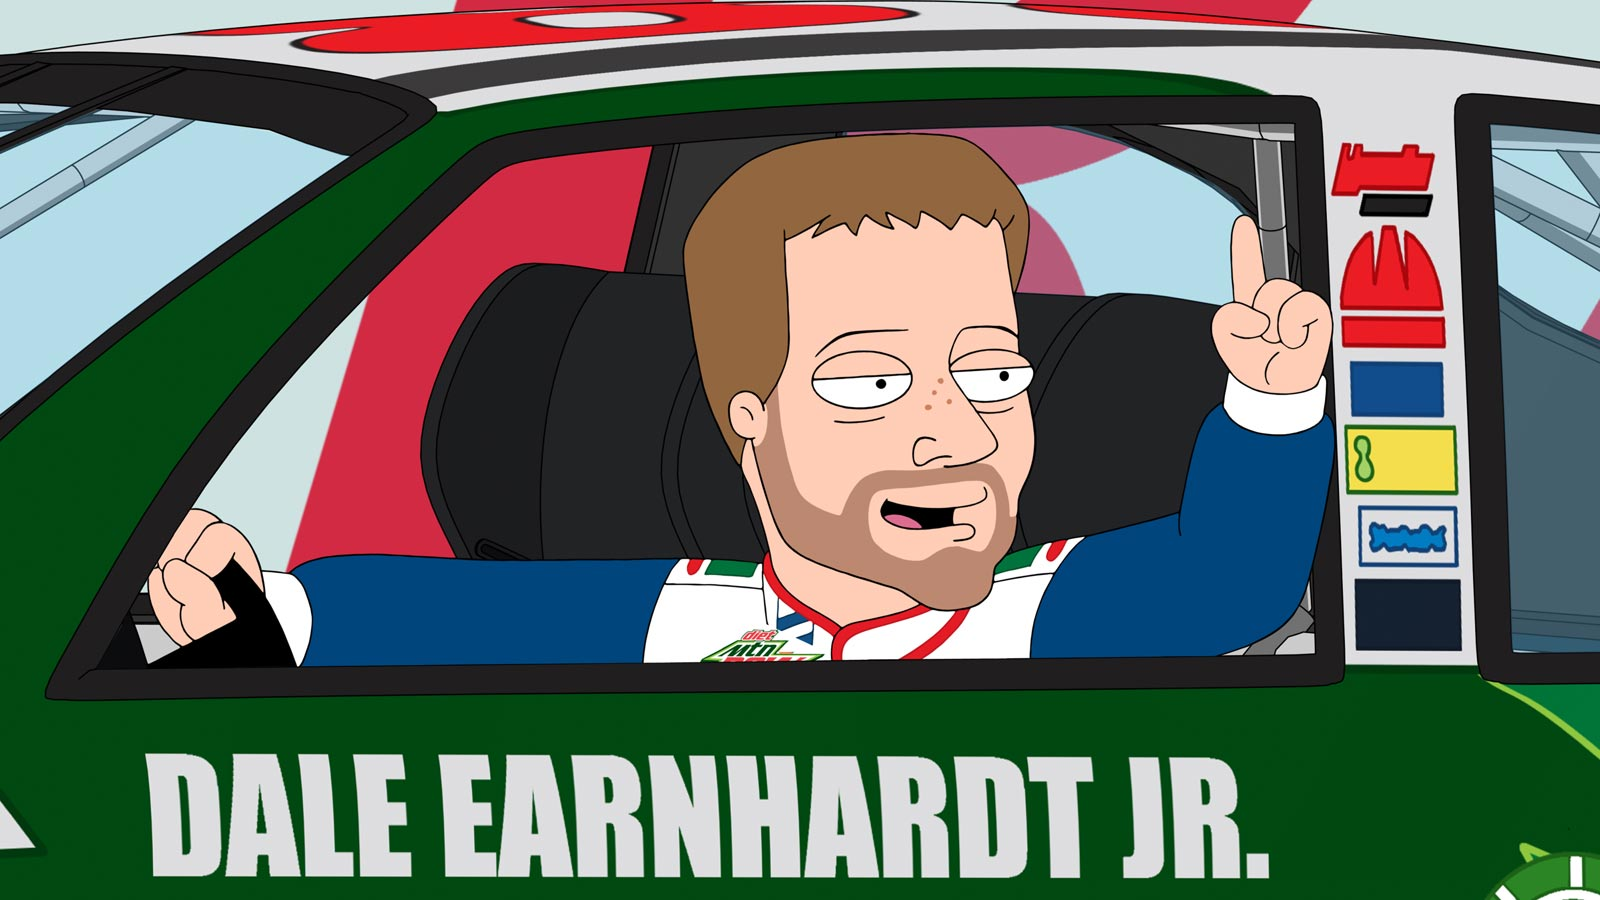 The-Cleveland-Show-Dale-Earnhardt-Jr